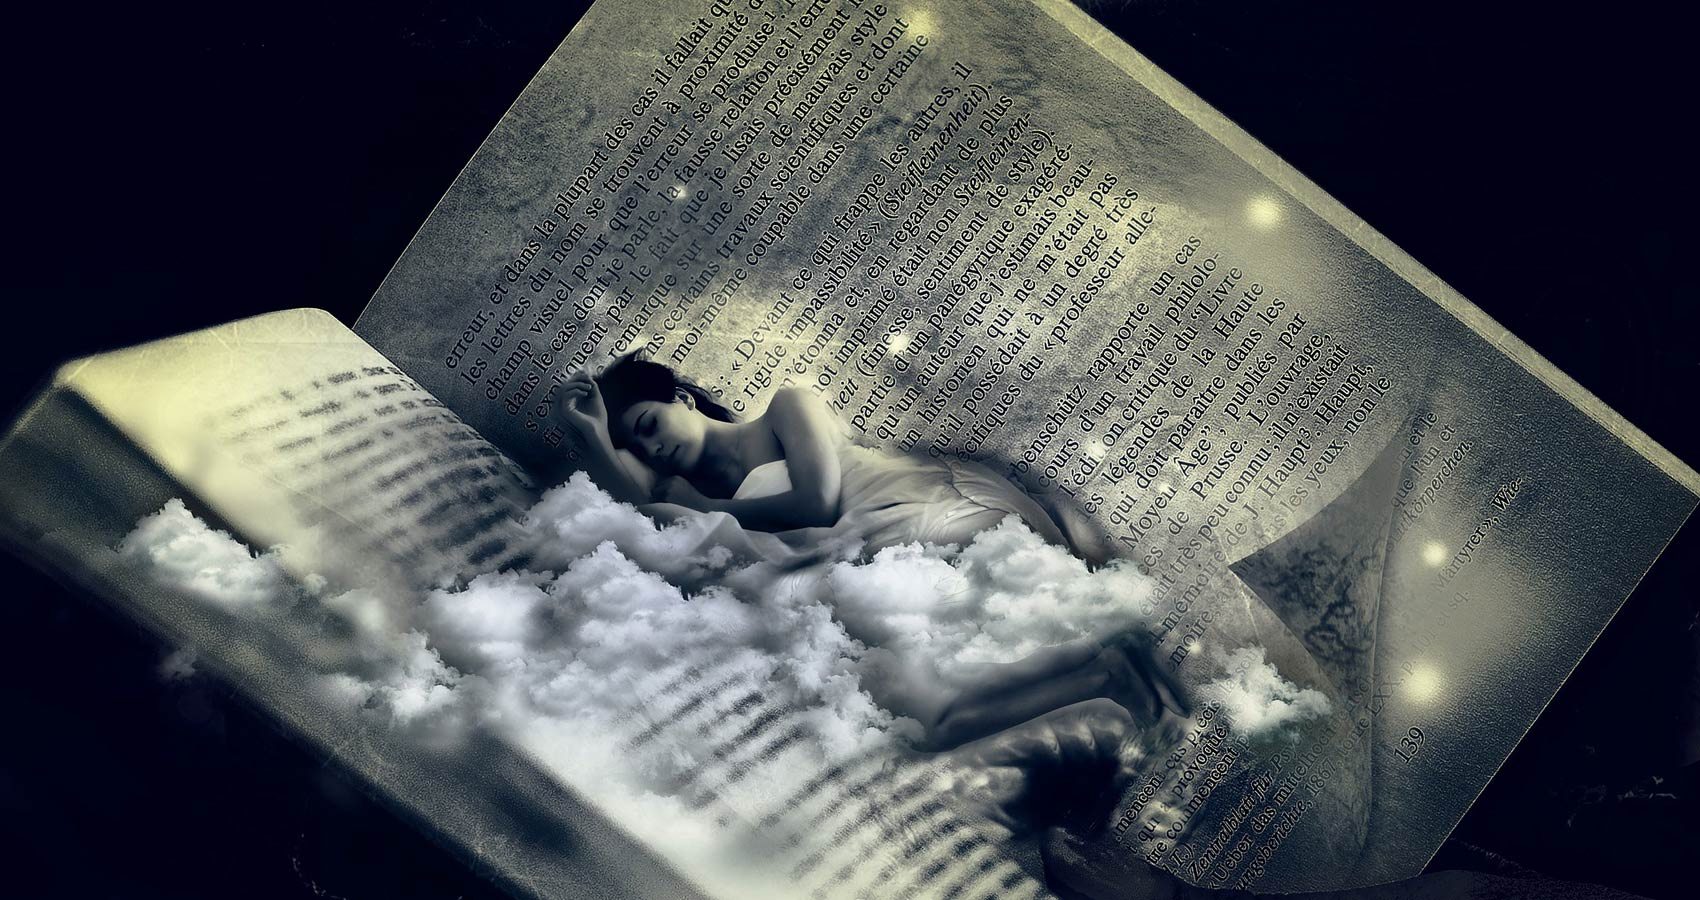 Insatiable Dreams, poetry by Aminath Neena at Spillwords.com